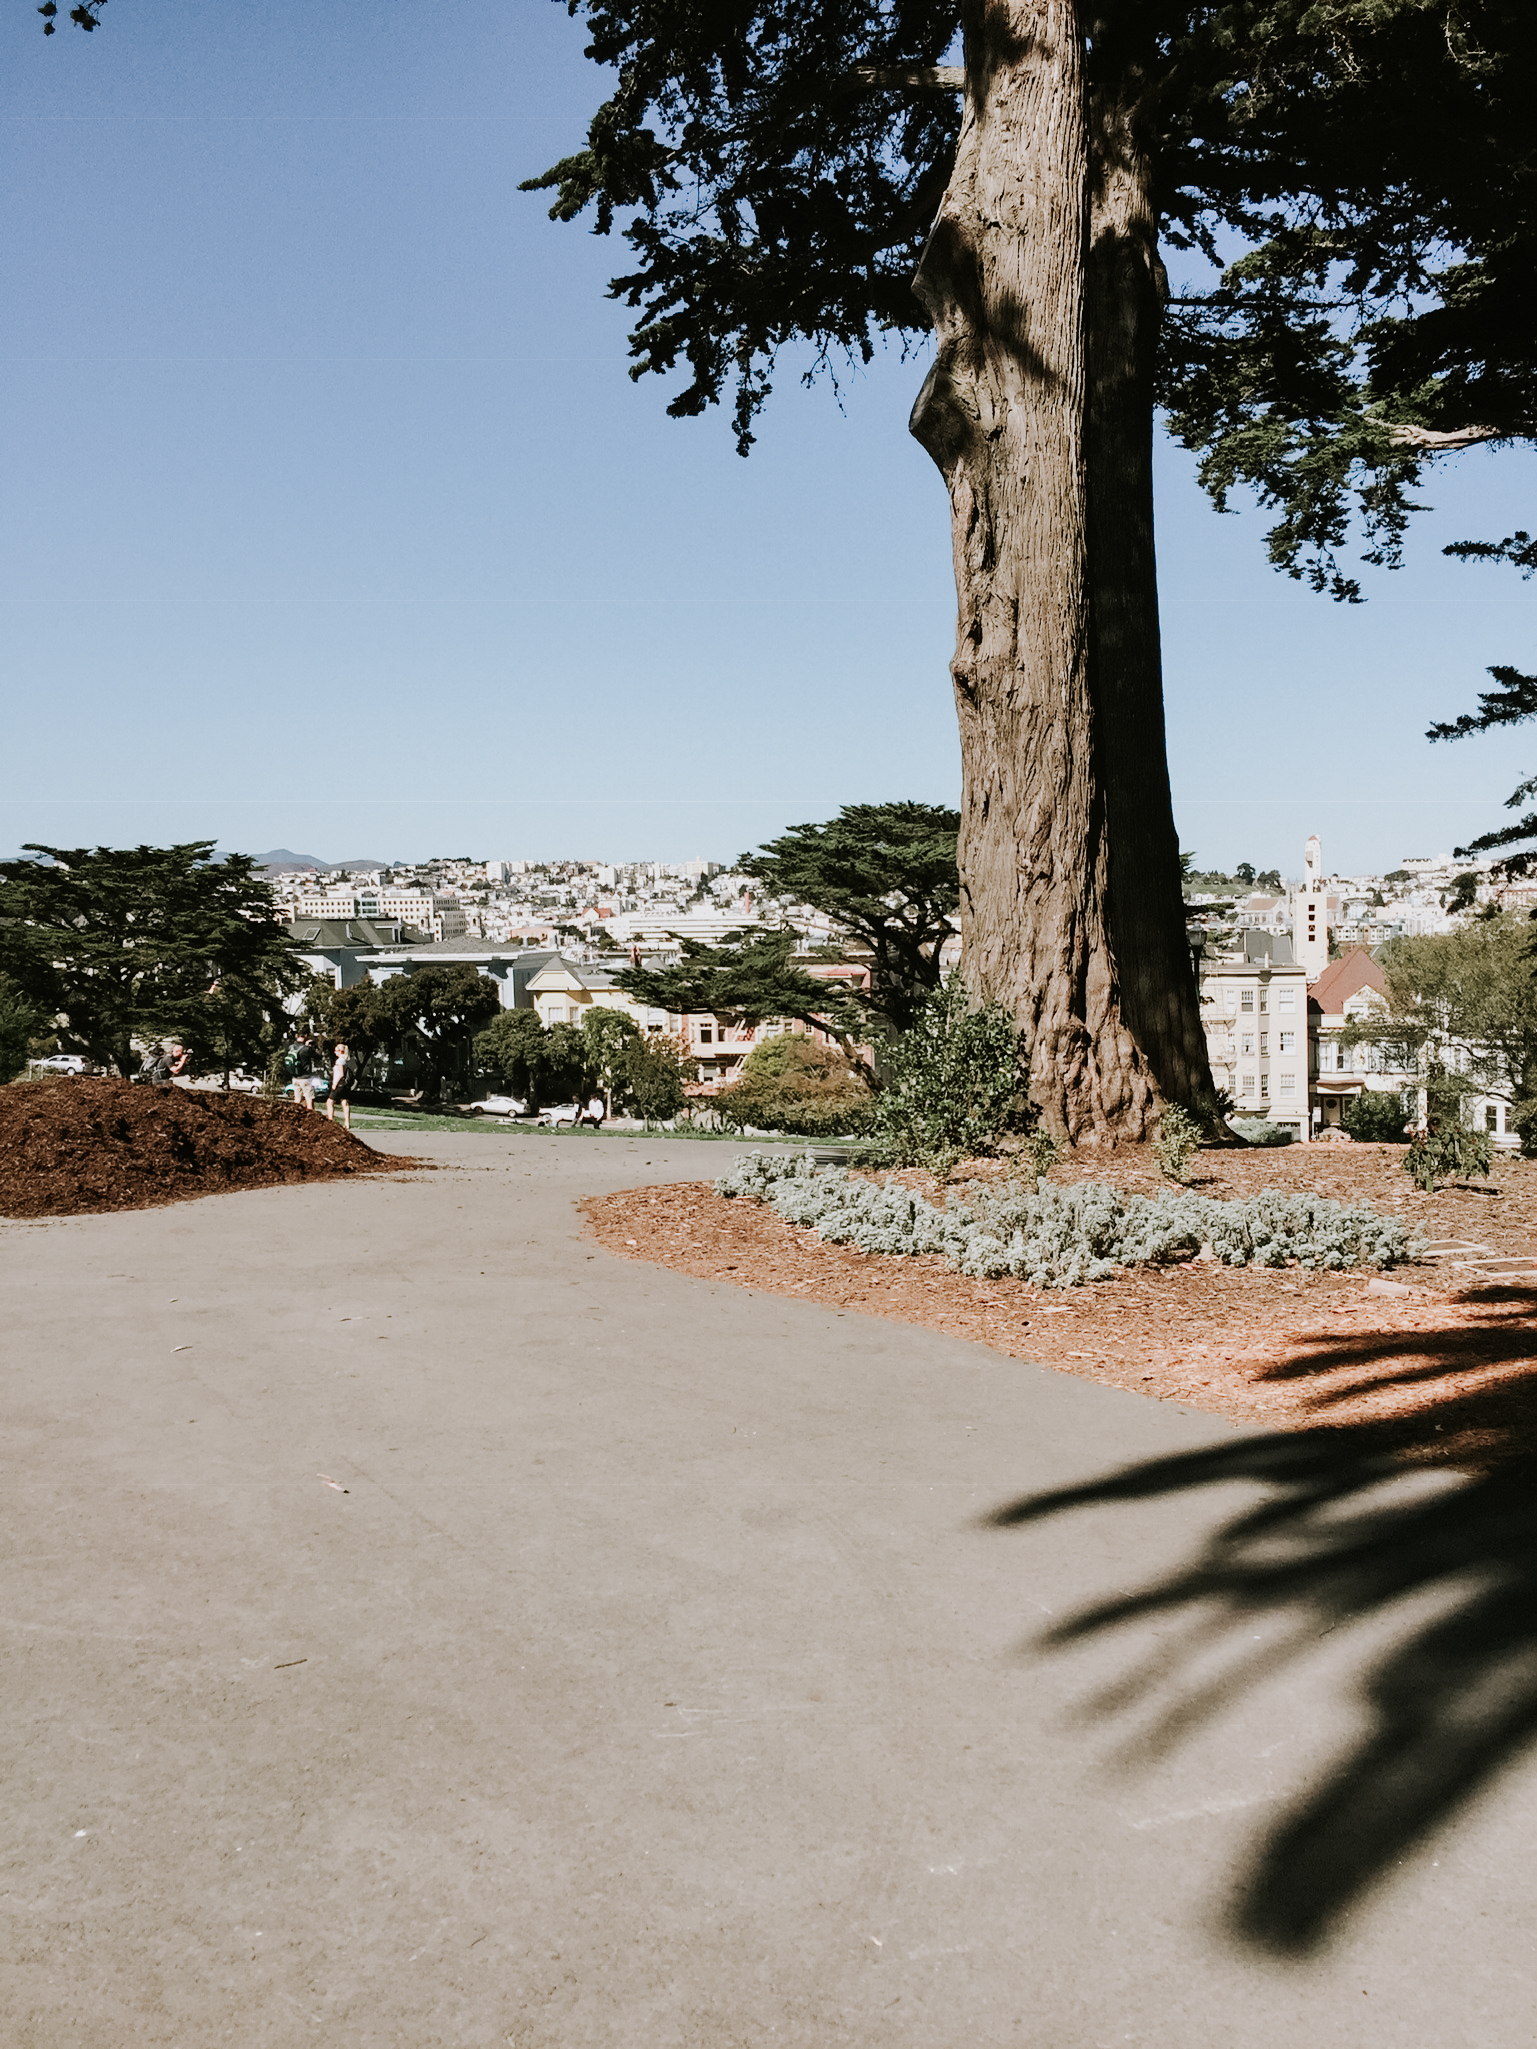 Our trip to San Francisco - the painted ladies park